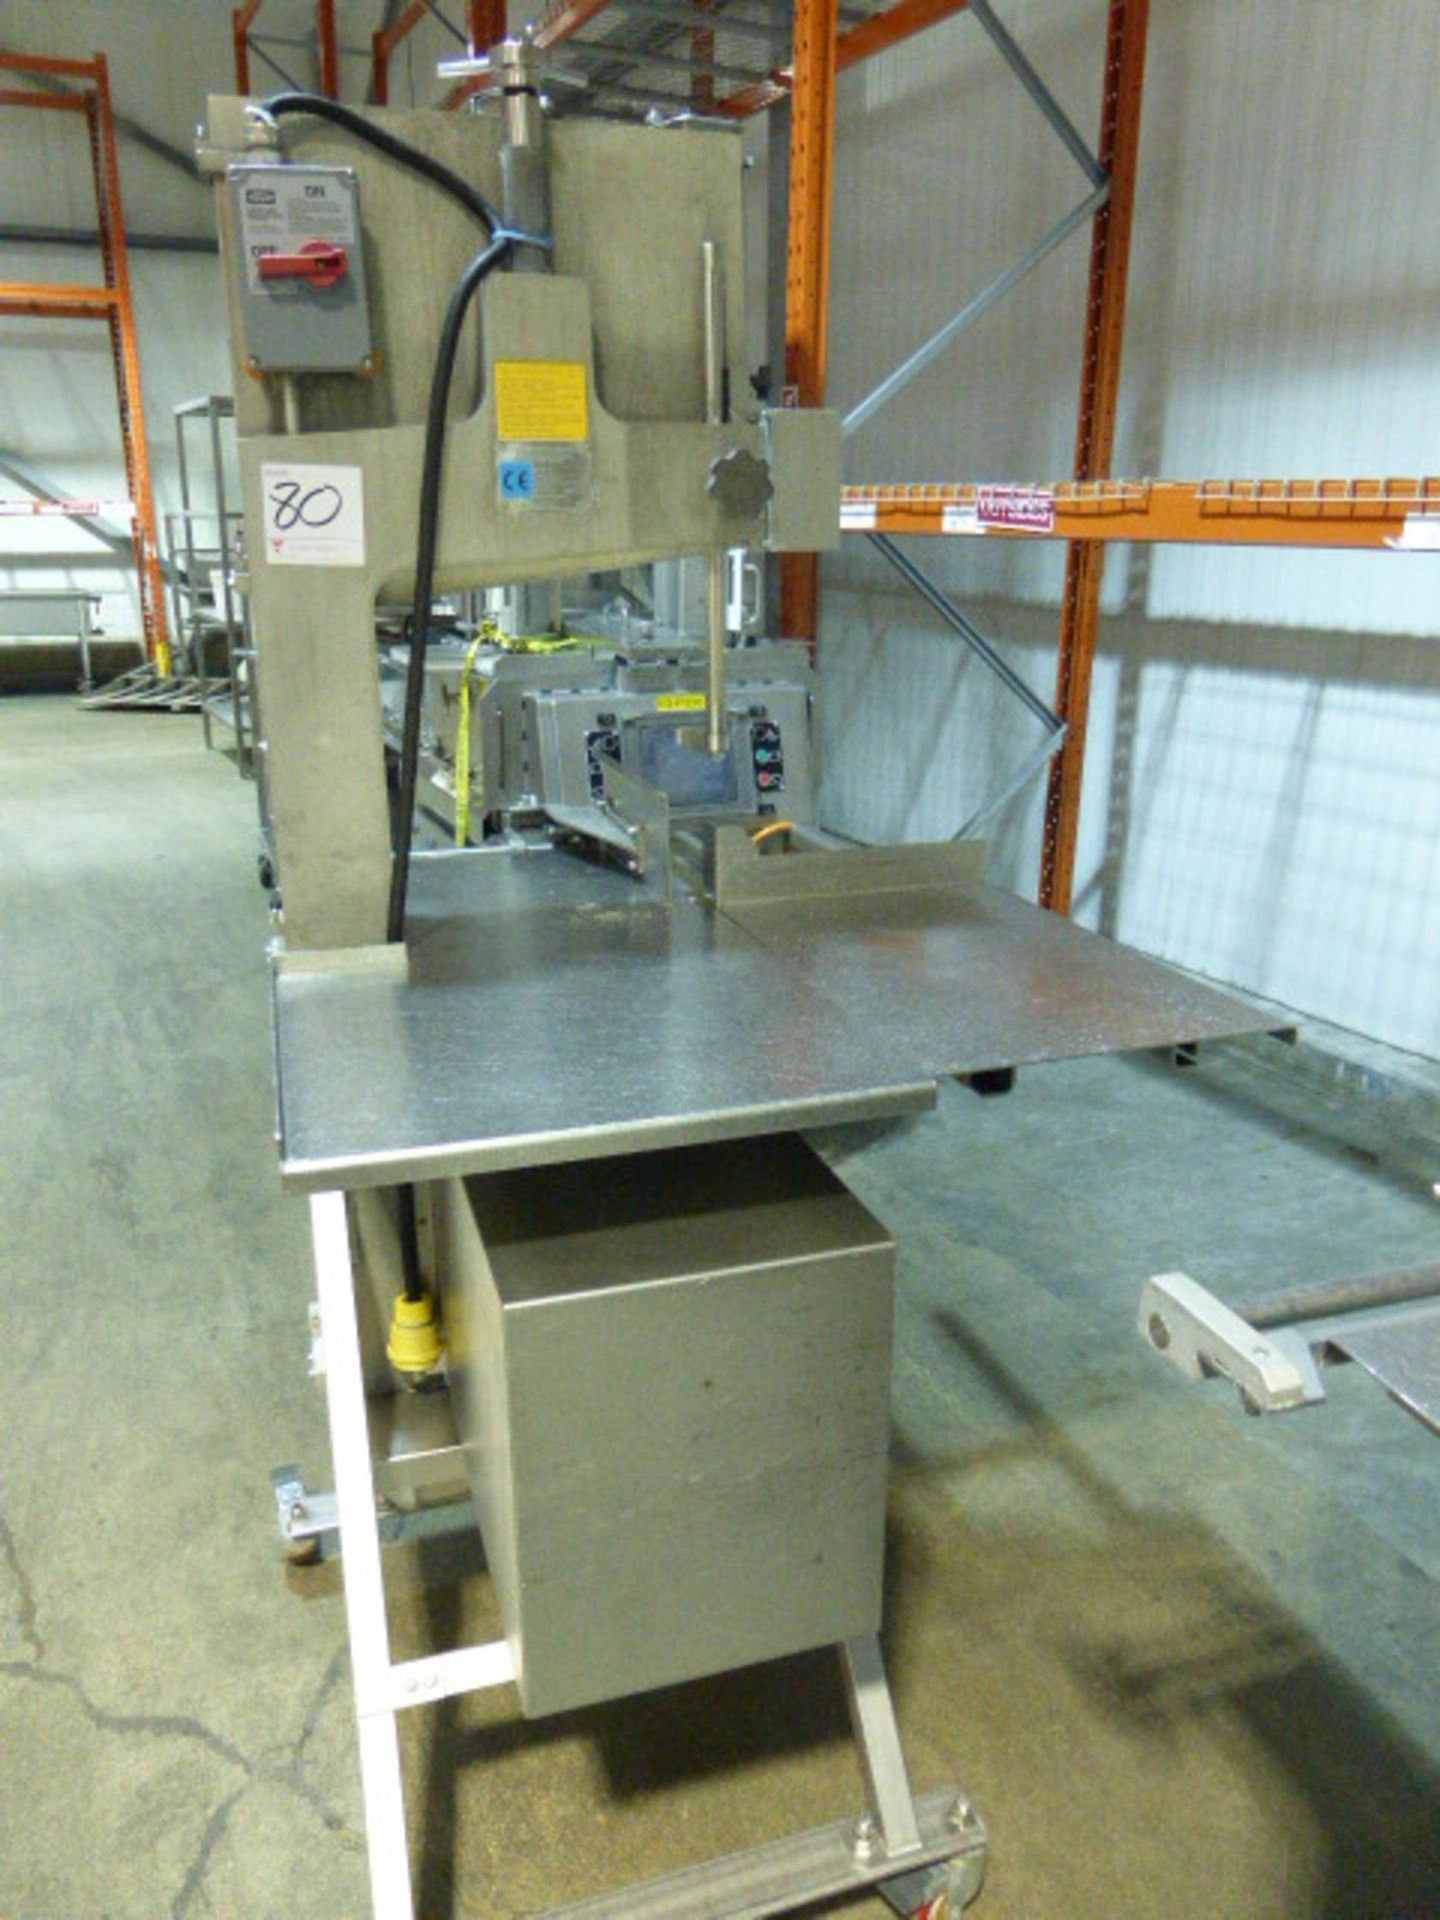 Lot 80 - AEW s/s bandsaw, model 400 Bandsaw, s/n 1335480